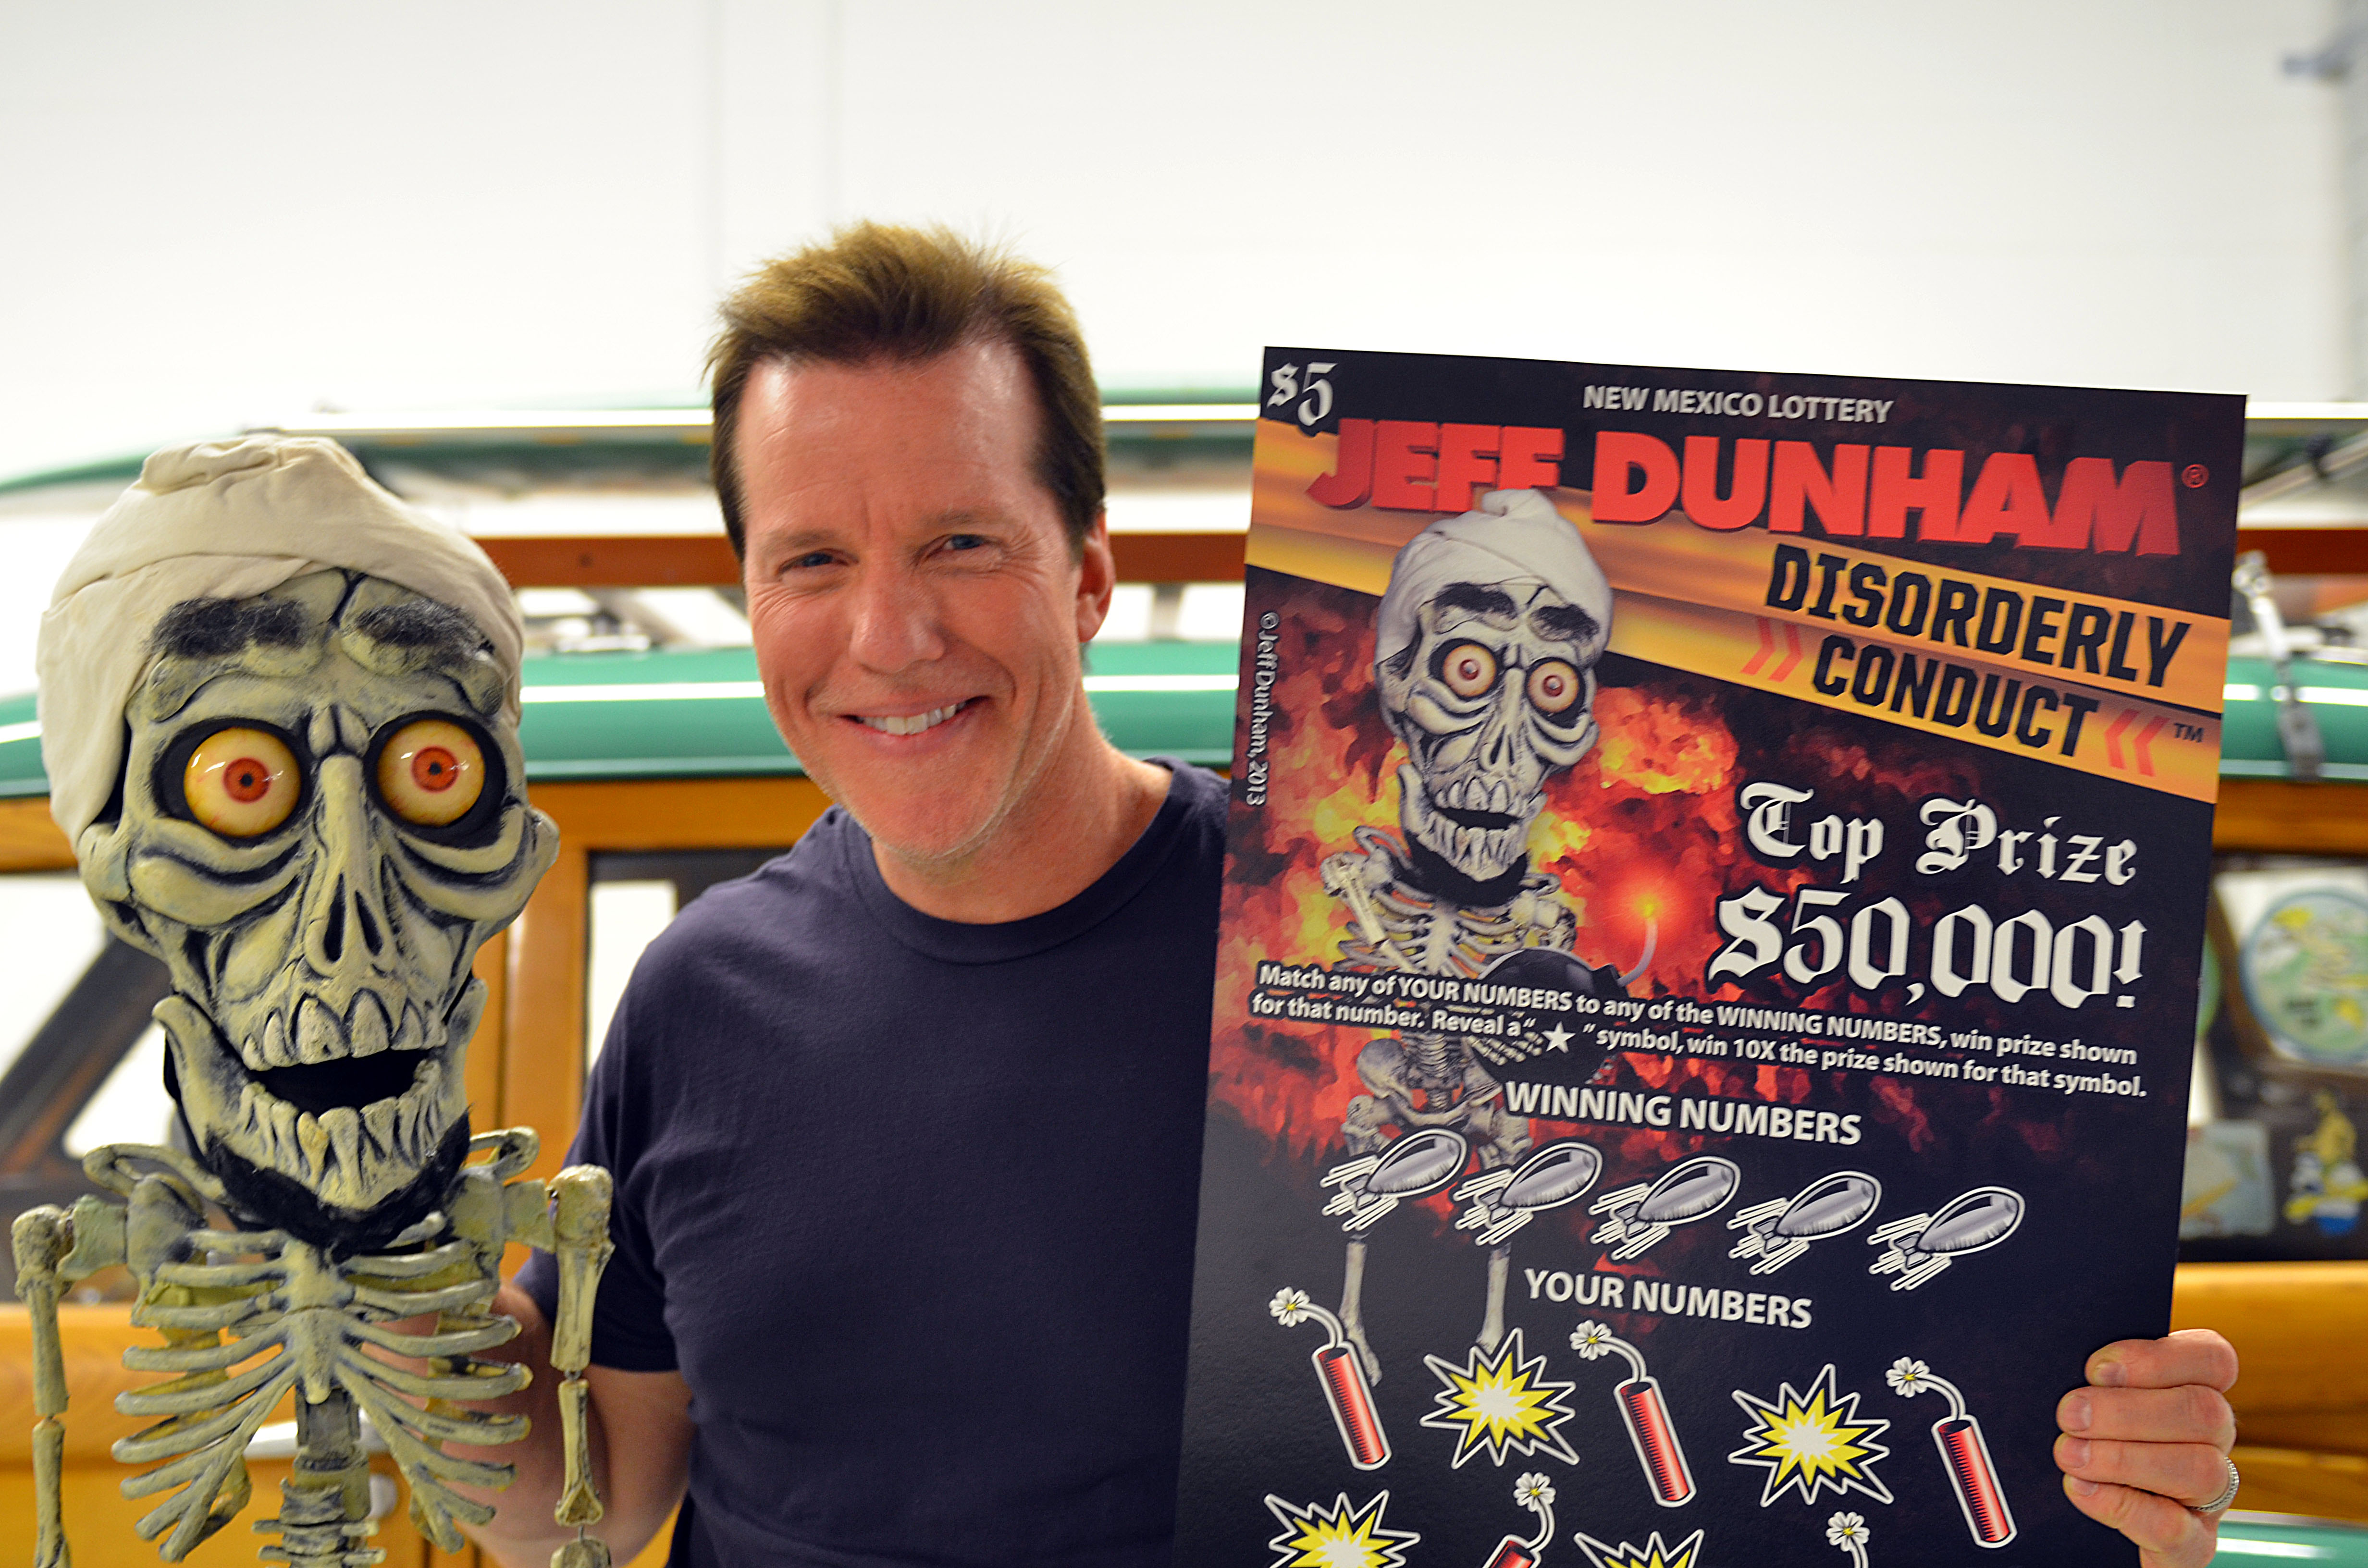 Comedian jeff dunham new mexico lottery create world premiere comedian jeff dunham is a scratcher star m4hsunfo